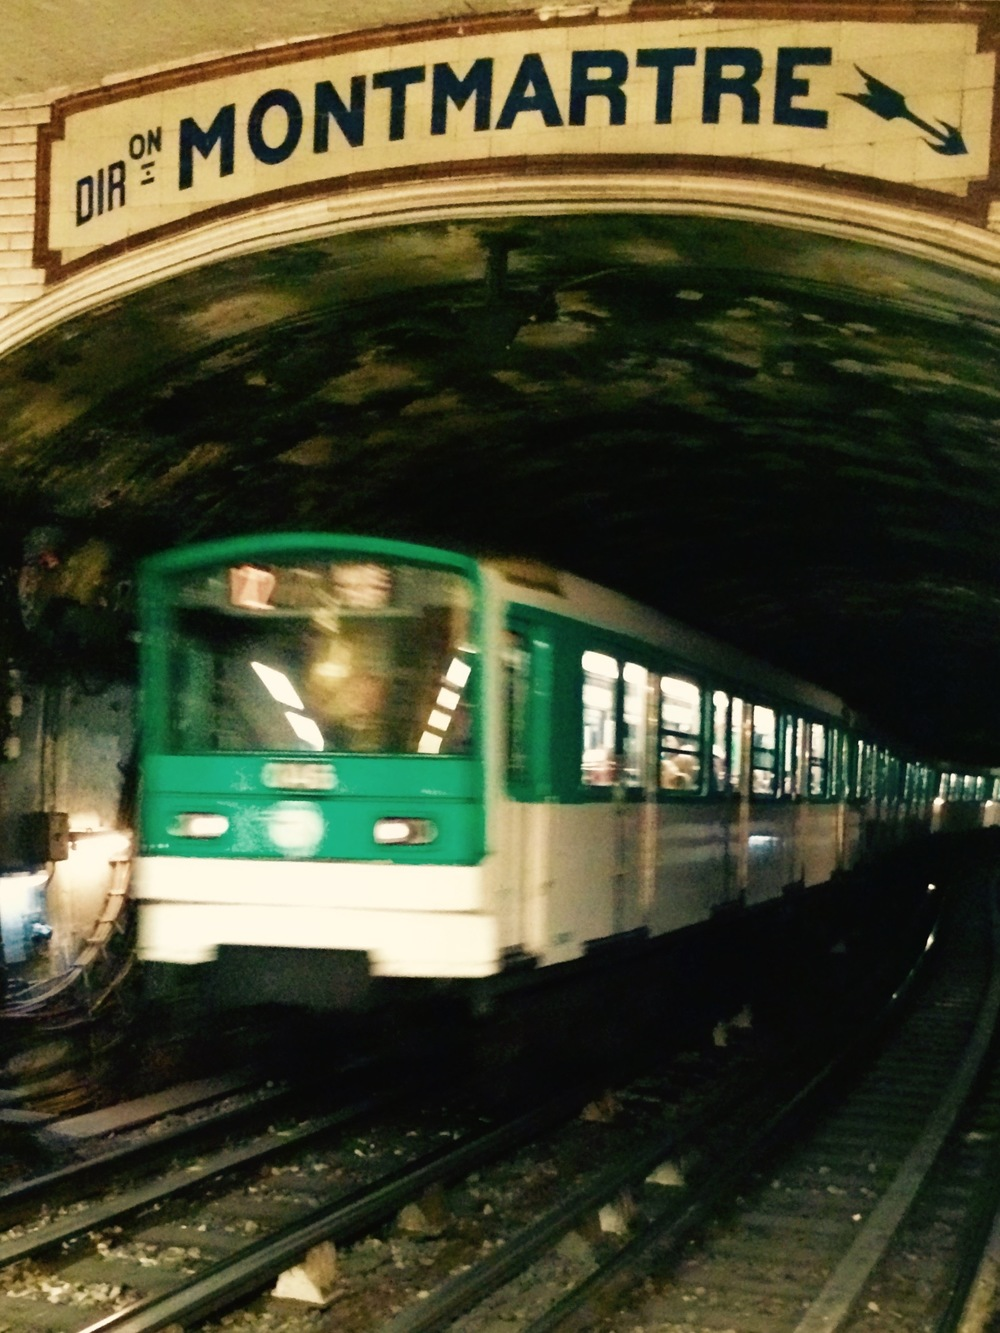 Metro Montmartre, Paris France - 3 Days*